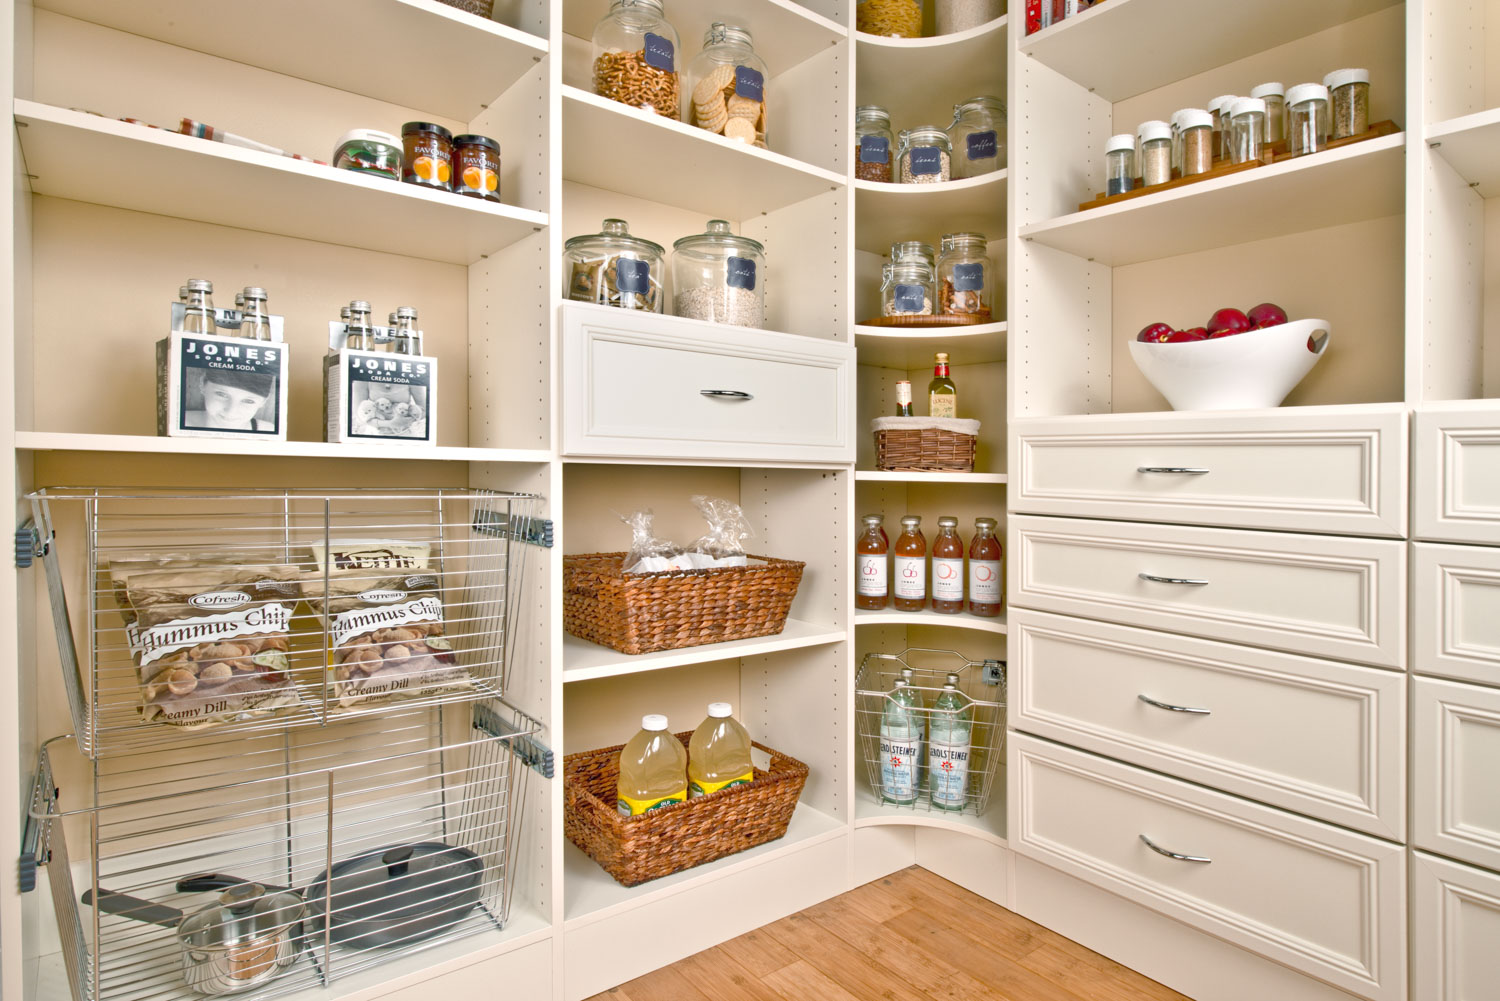 Pantry shelving – choose the right one